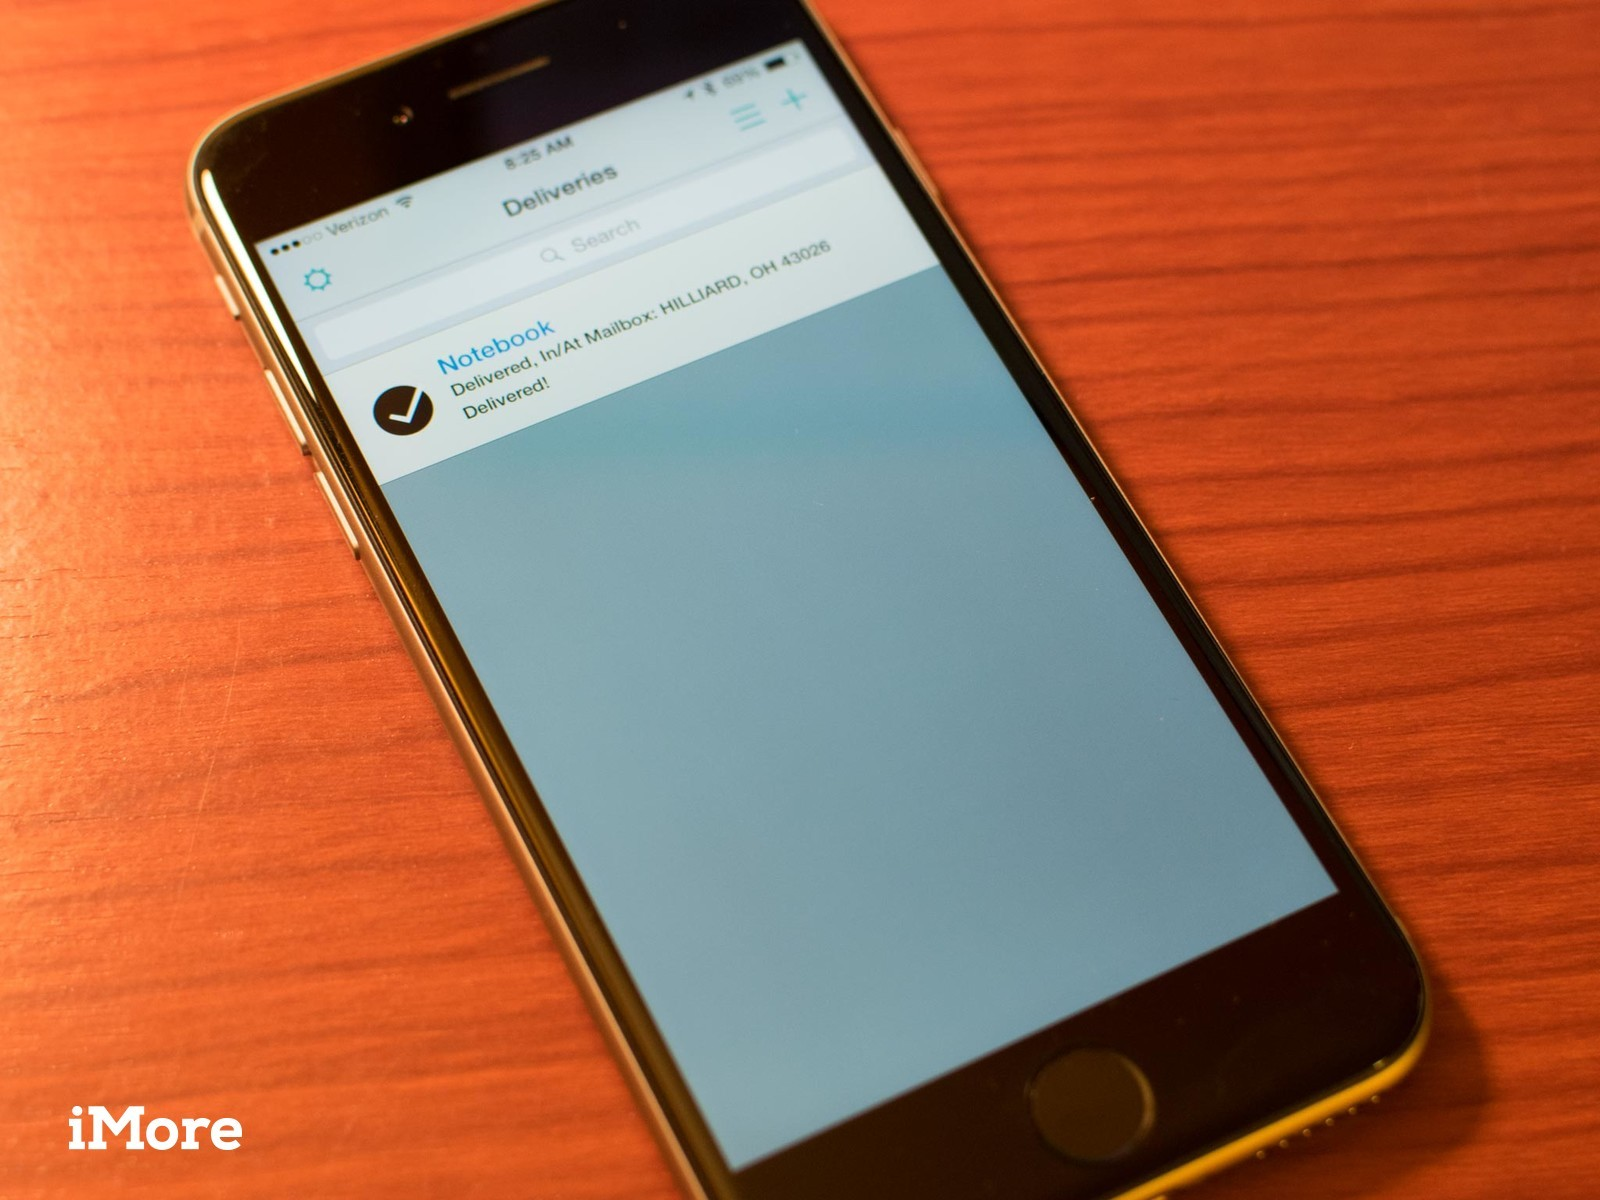 Deliveries for iPhone and iPad updates with a widget, an extension, and much more